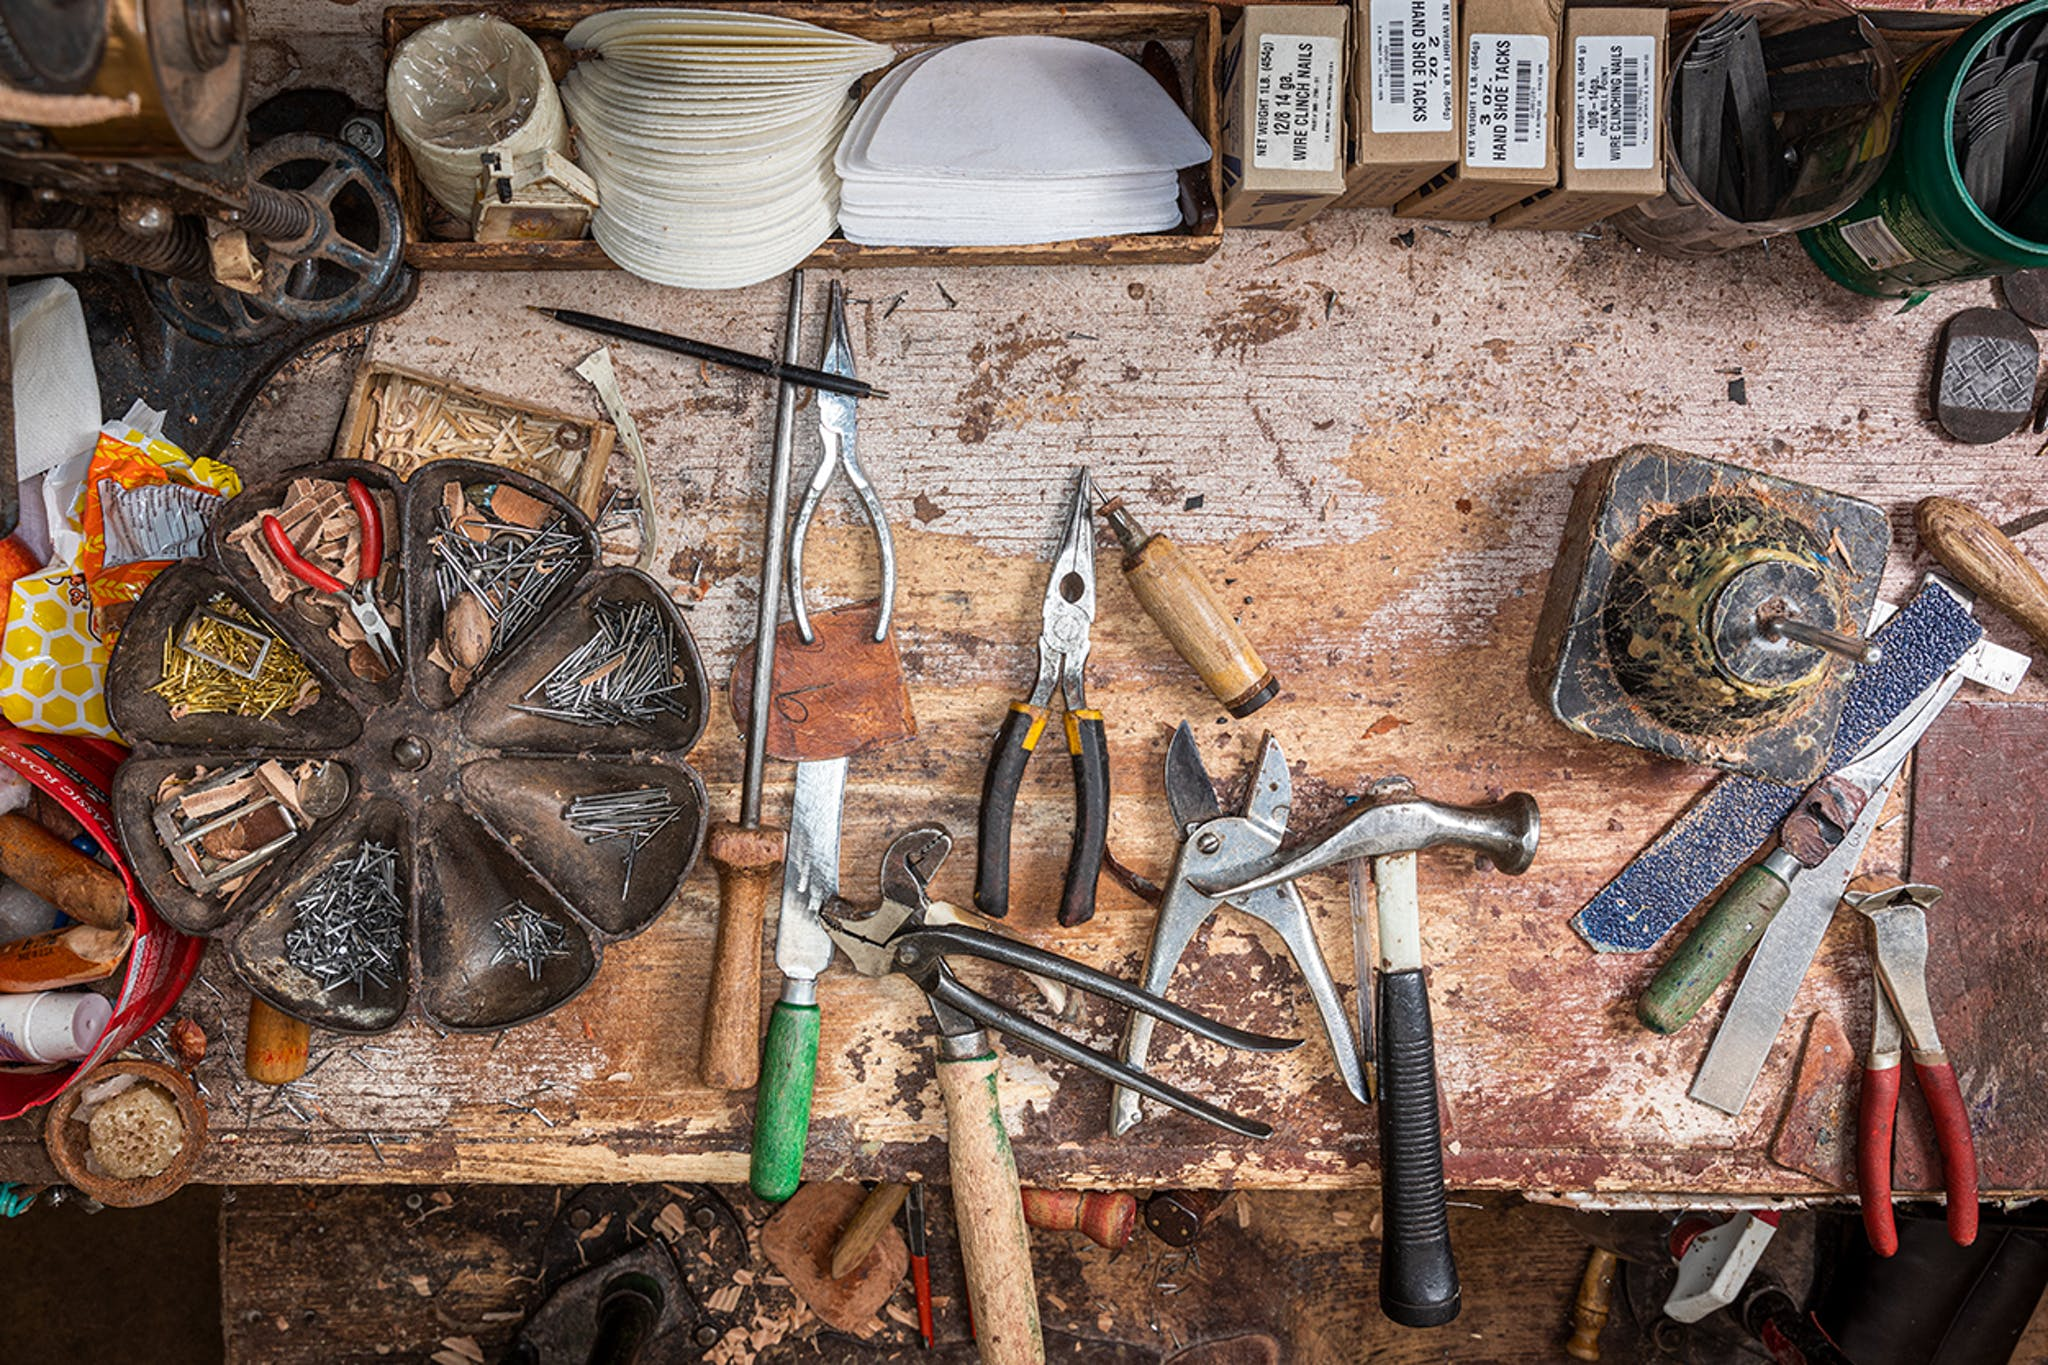 A well-worn work bench with sundry tools of the bootmaking trade.